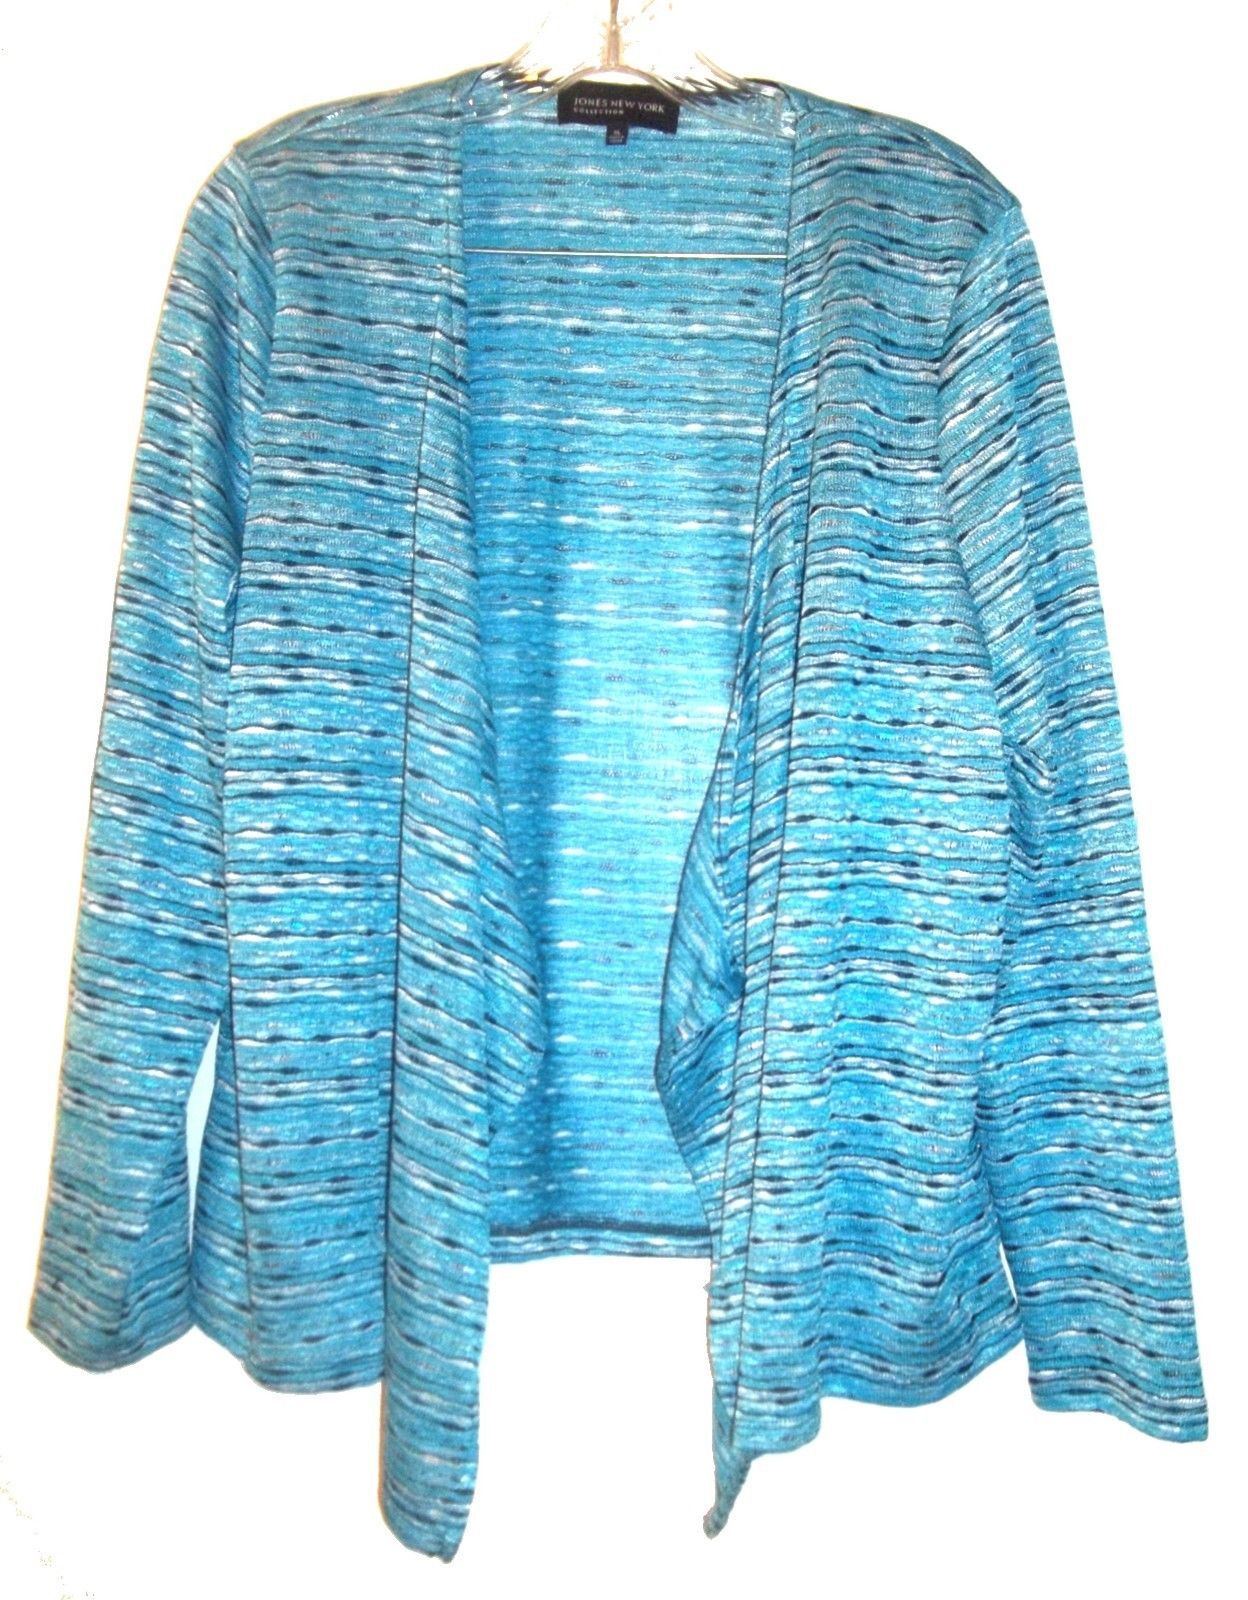 Primary image for Size XL - Jones NY Blue Striped Lightweight Long Sleeve Open Jacket Sweater